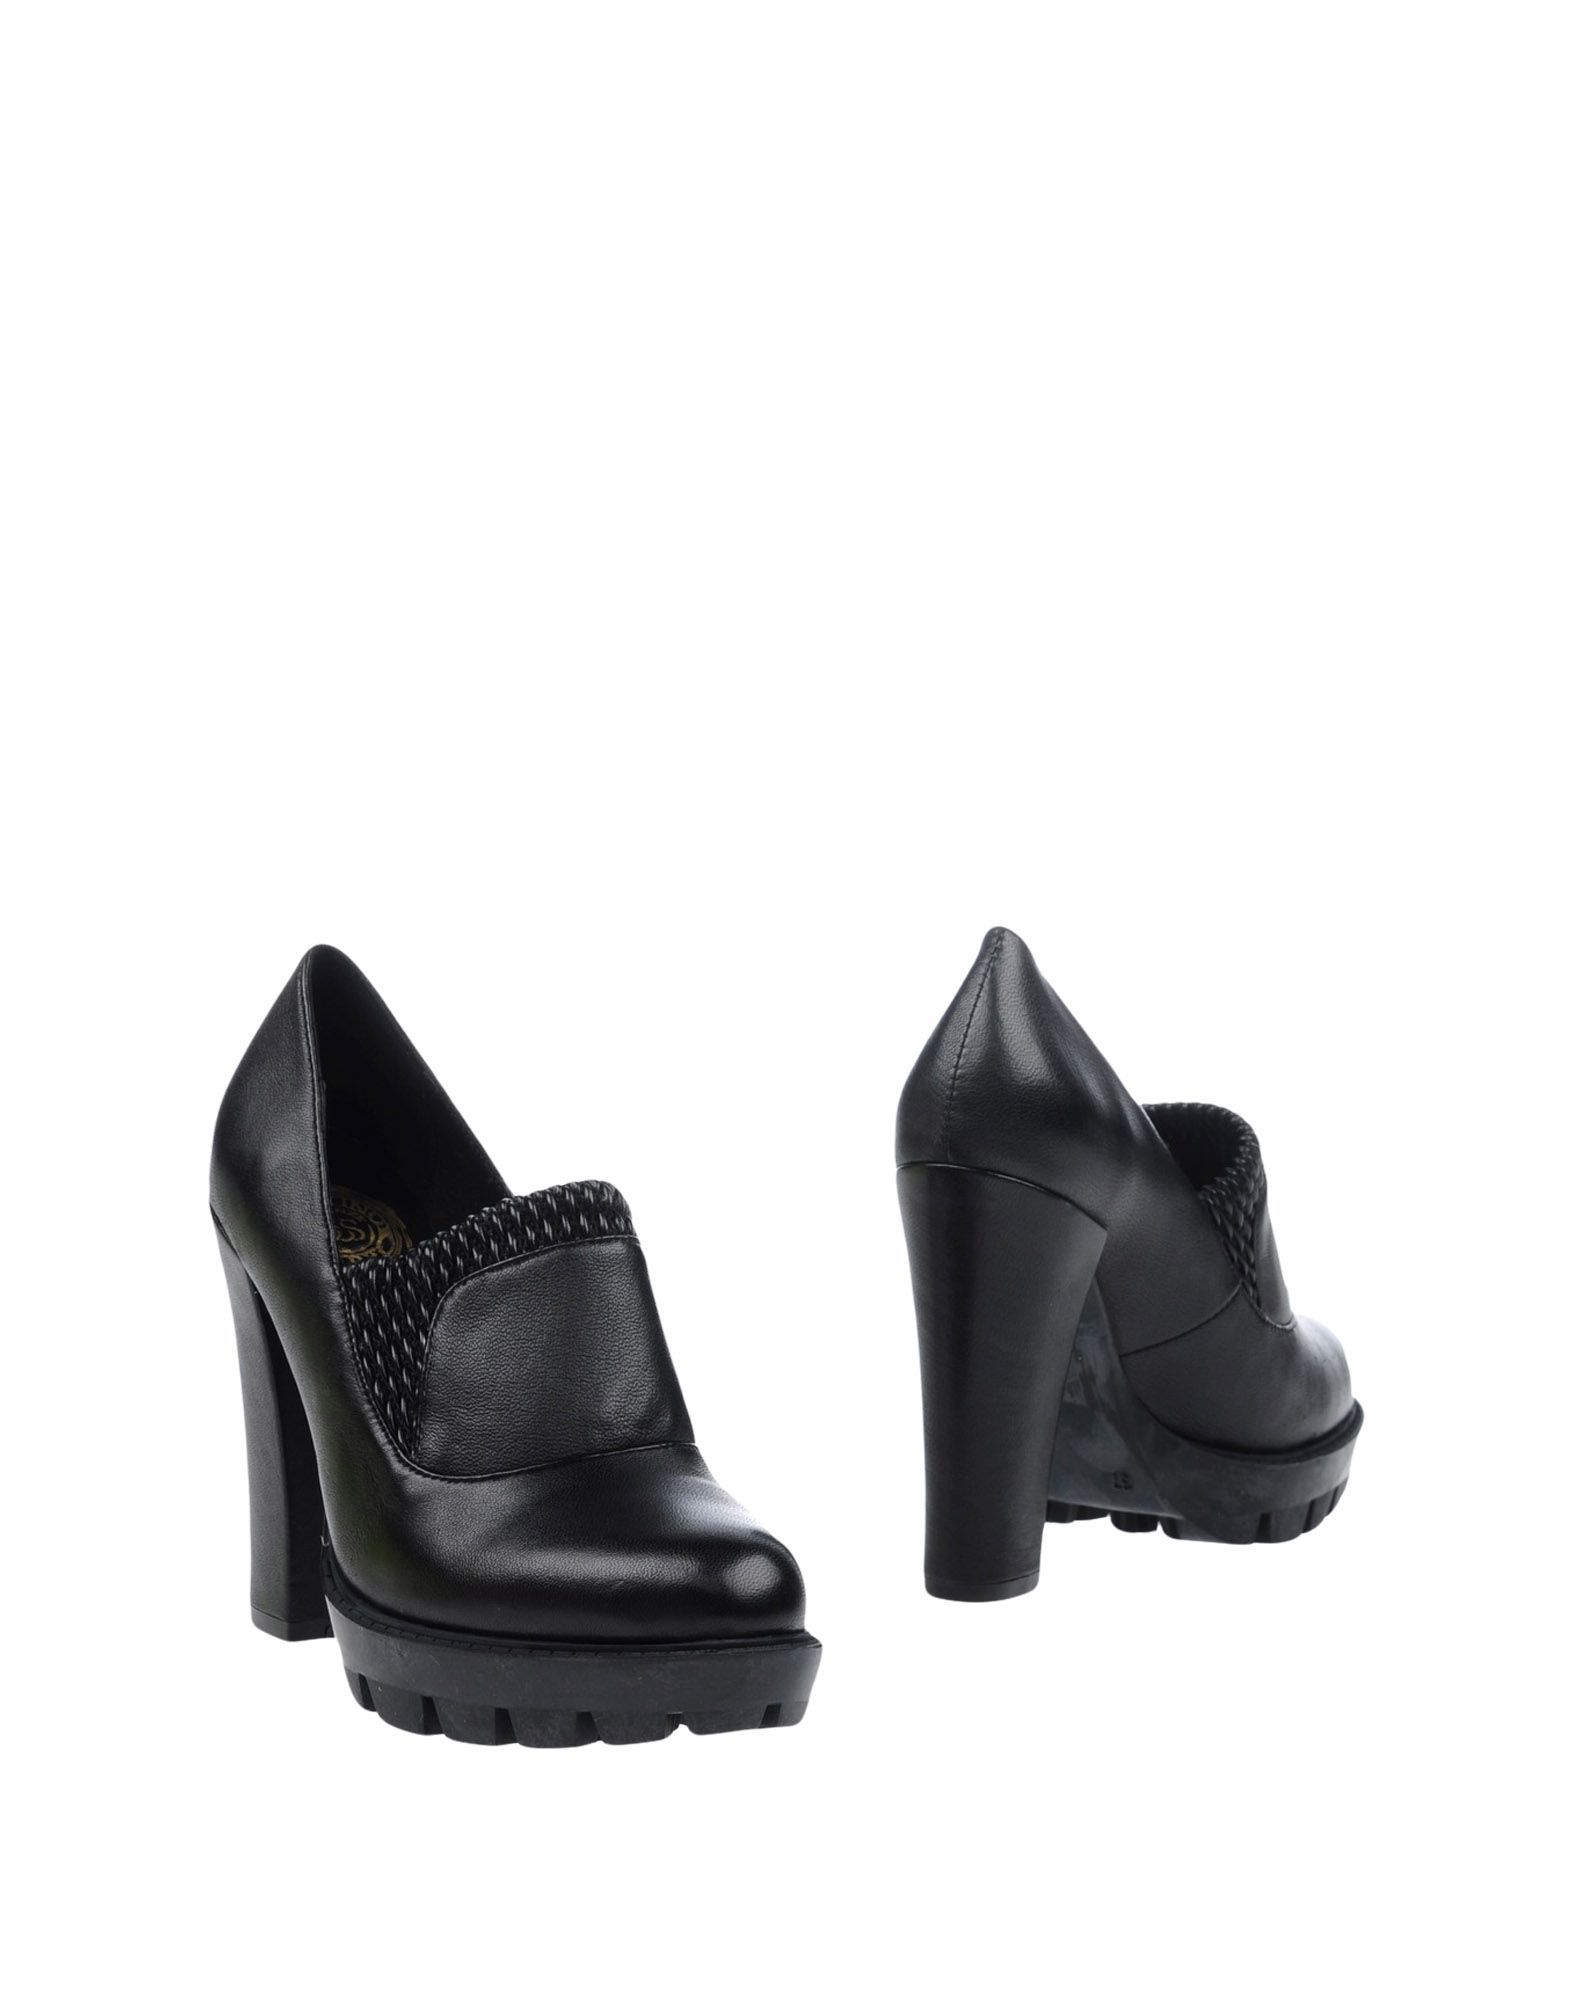 Scervino Street Black Leather Heeled Loafers